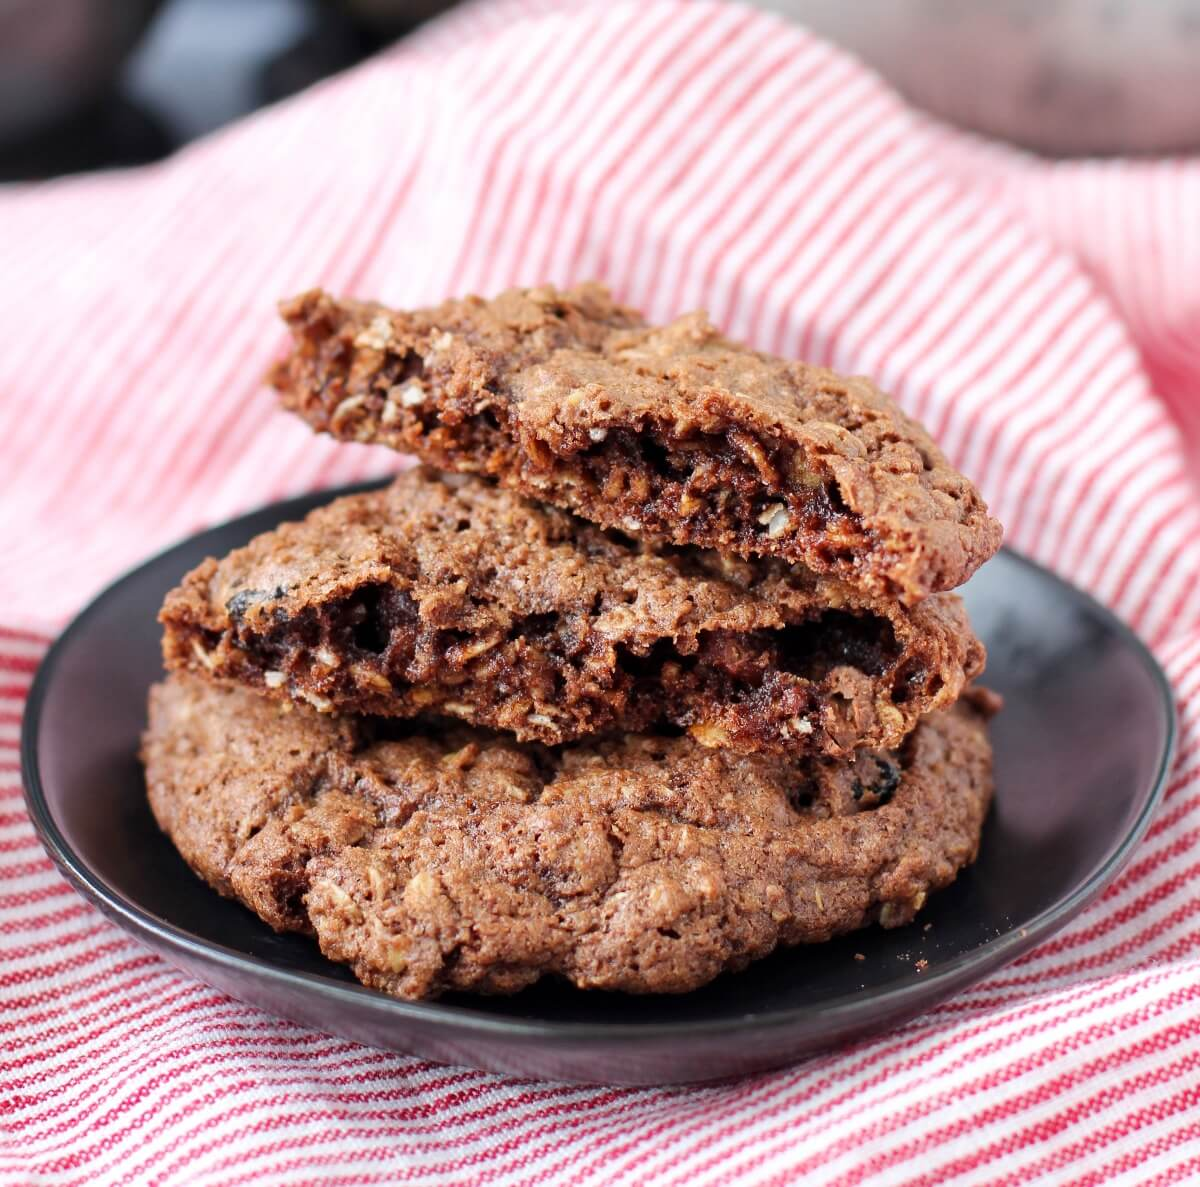 Chocolate Cherry Oatmeal Cookies with chocolate chips